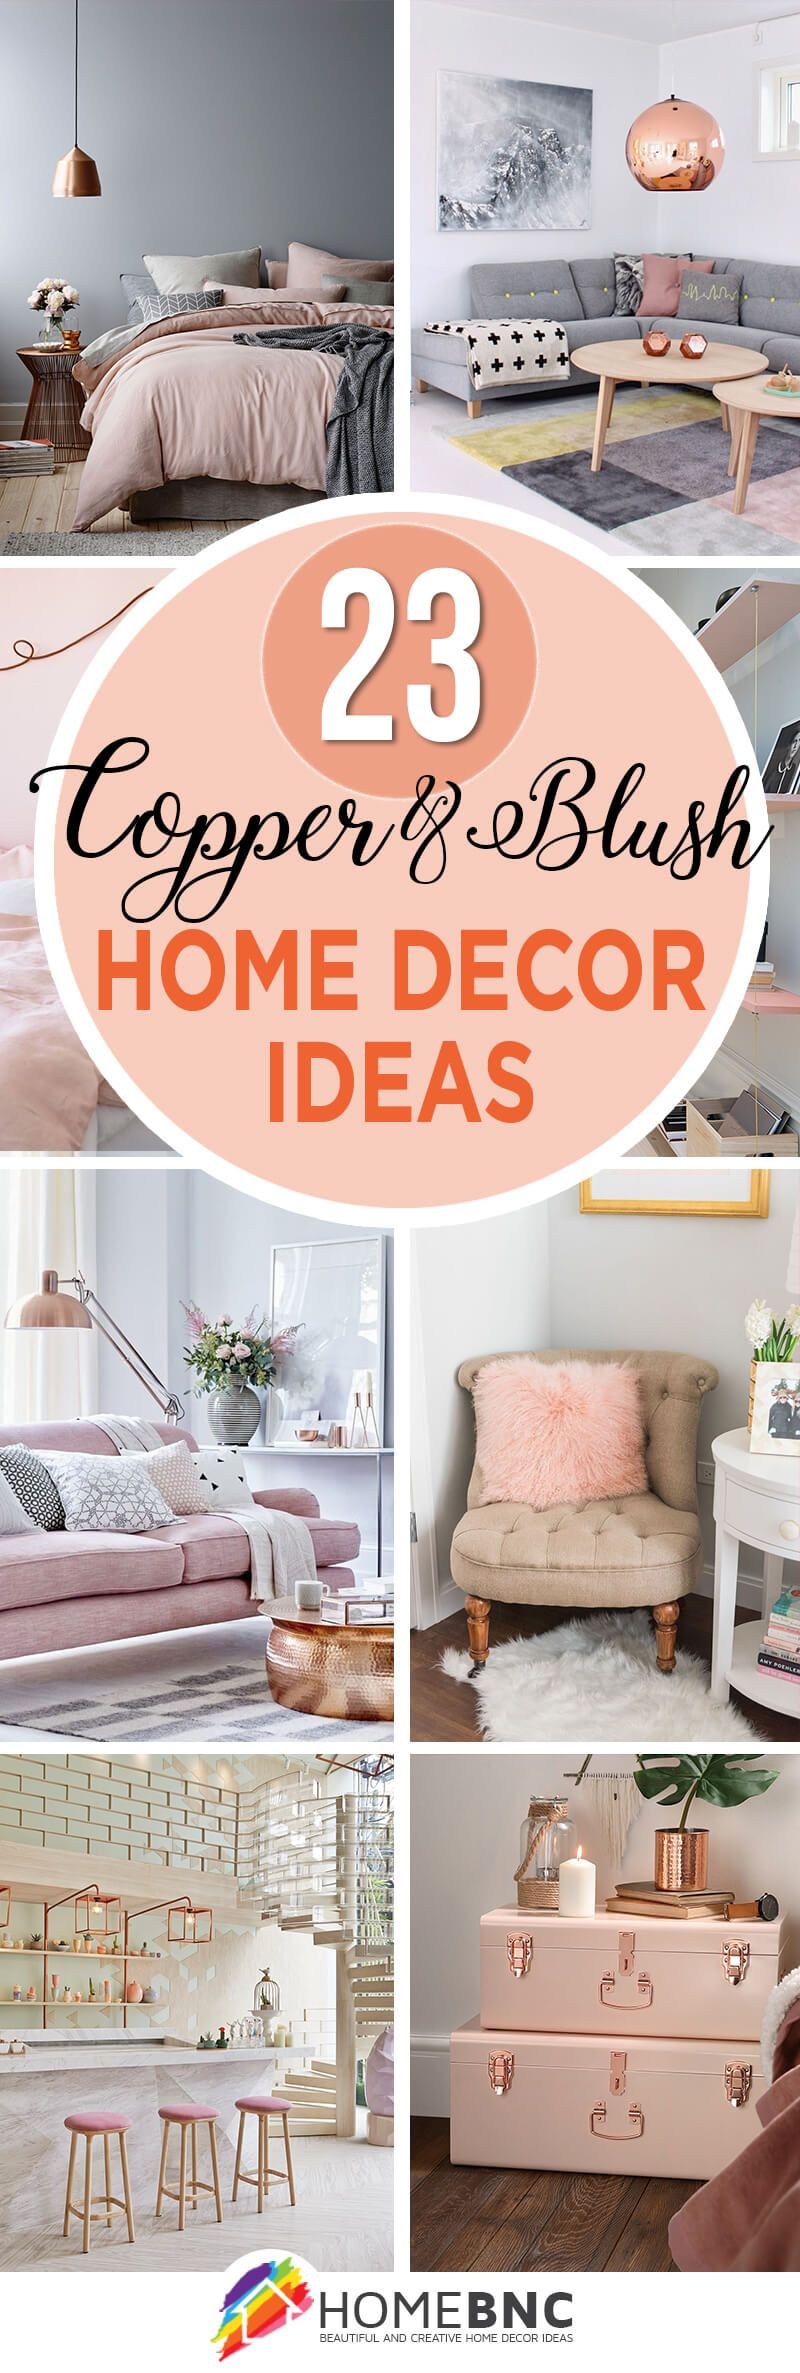 Sophisticated Rouge 23 Copper and Blush Designs